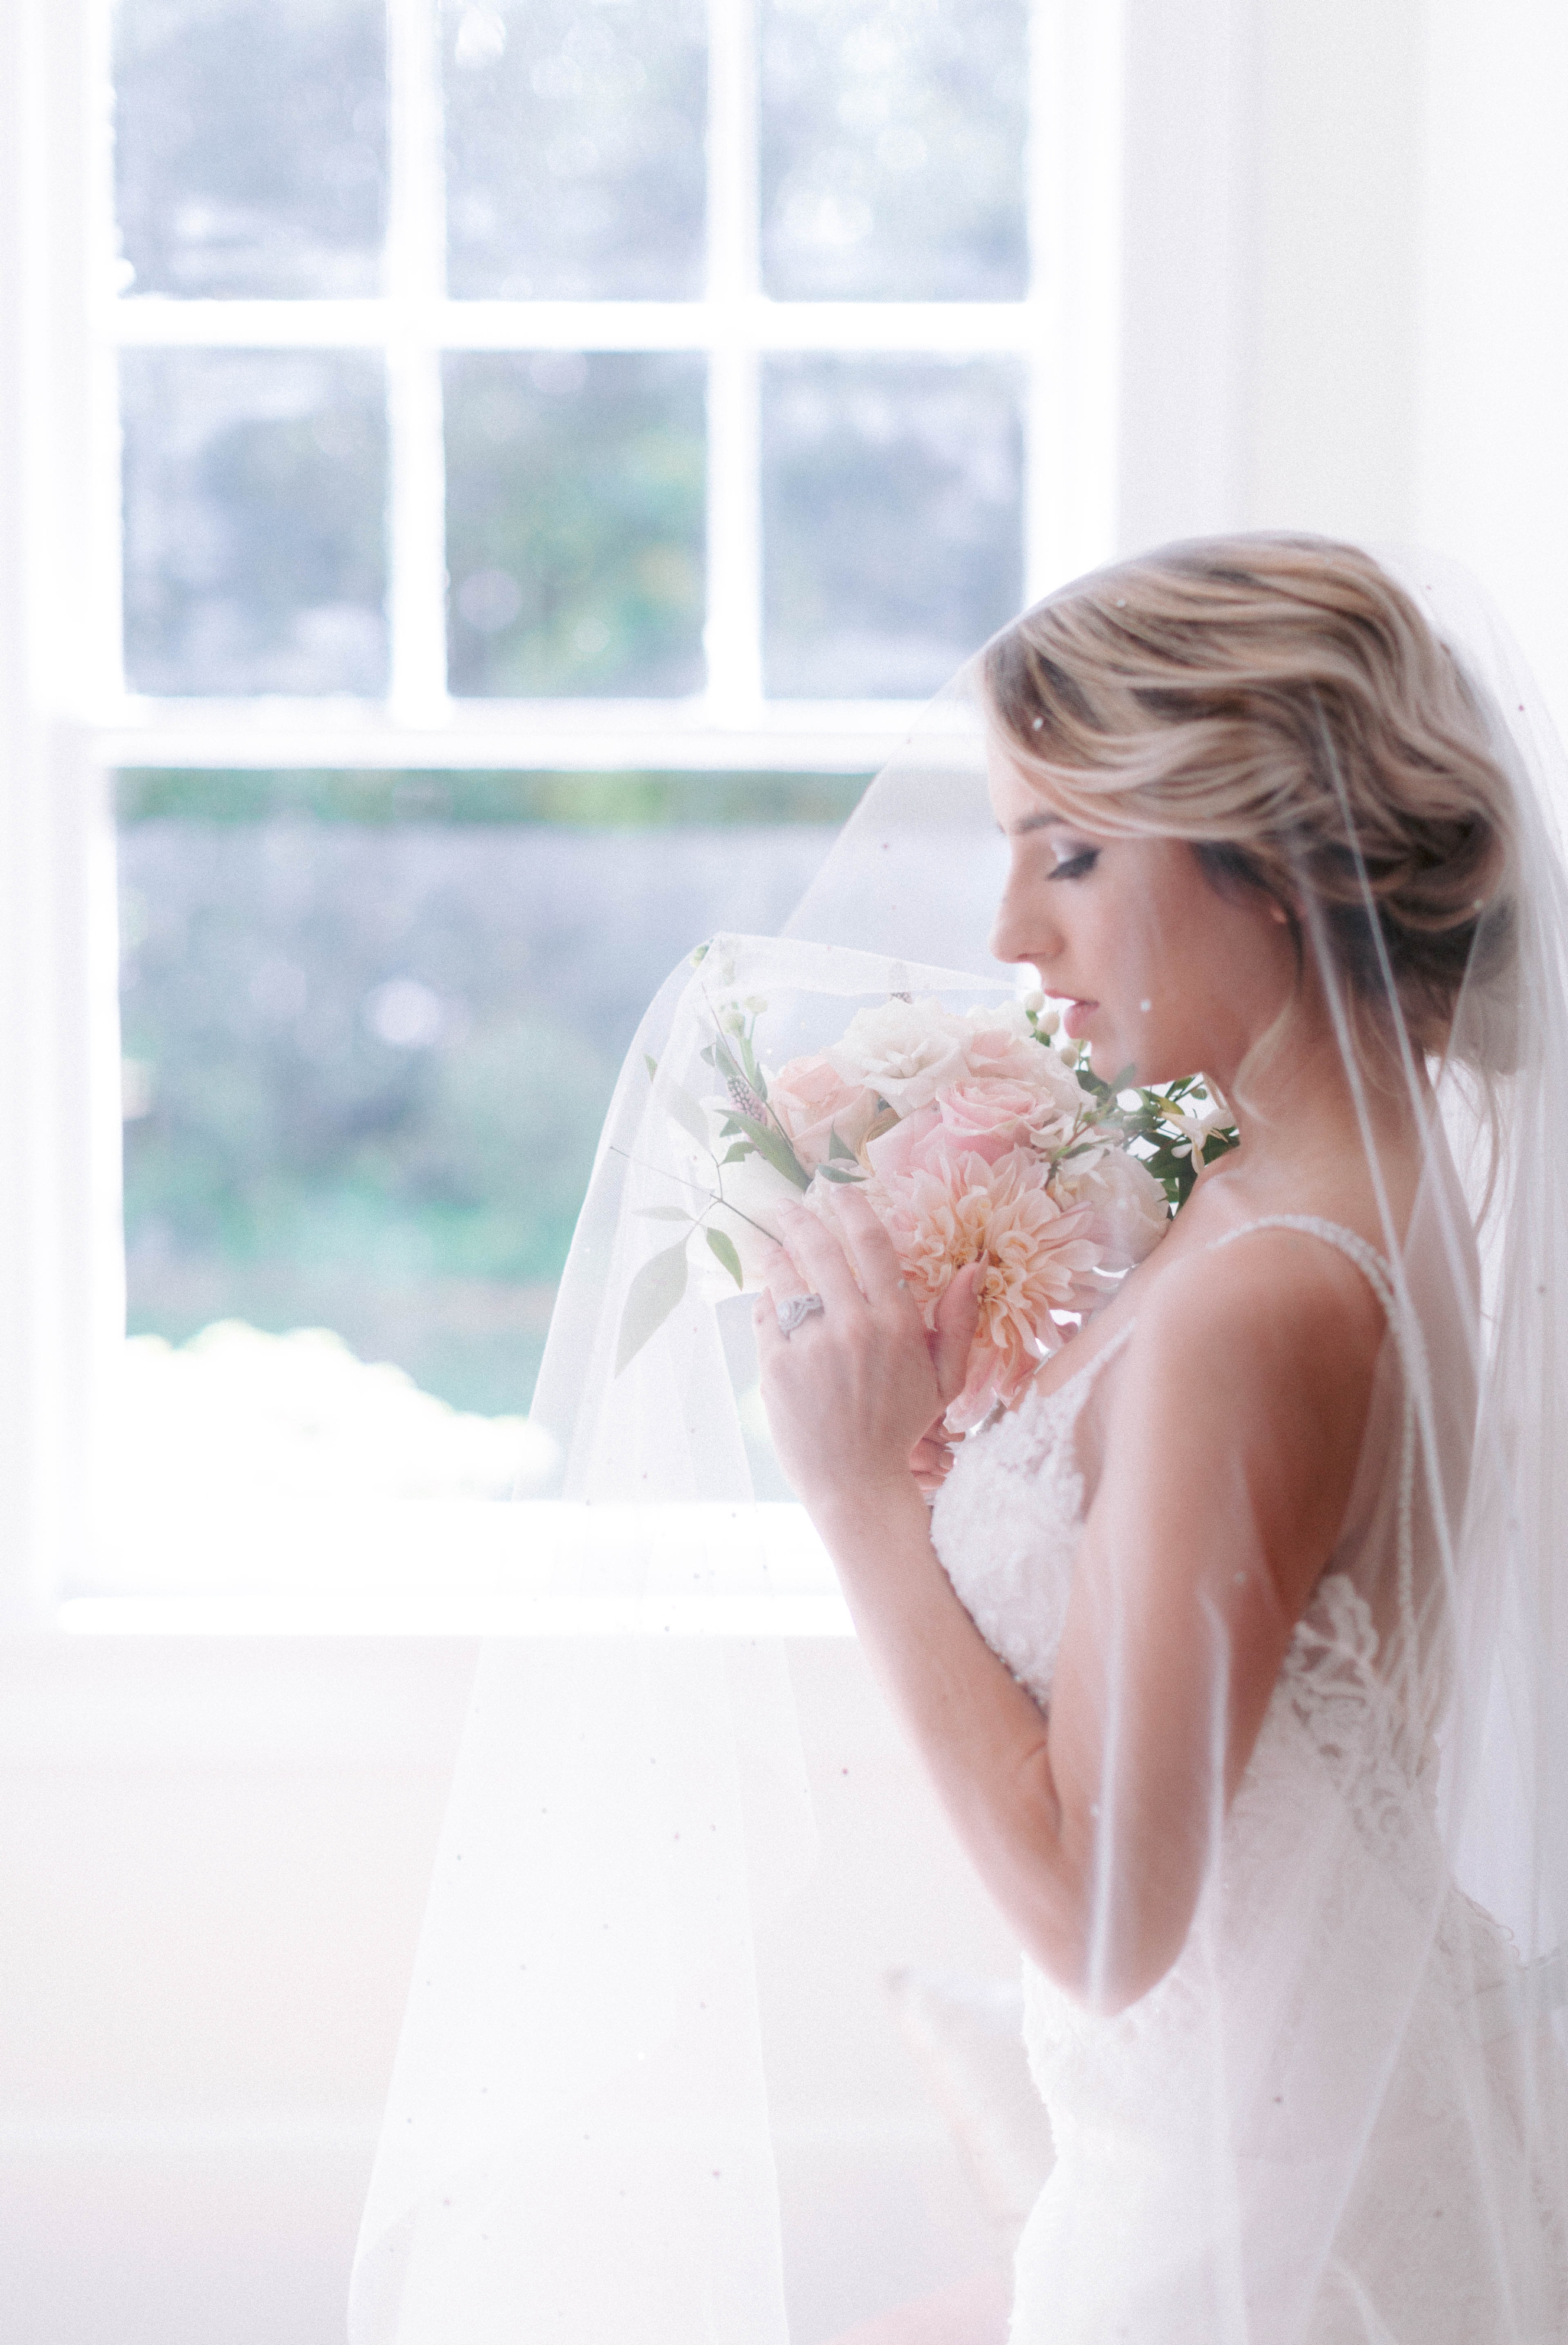 Indoor Natural Light Bridal Portraits by a window with a white backdrop - classic bride with pastel colors - wedding gown by Stella York - Honolulu, Oahu, Hawaii Wedding Photographer